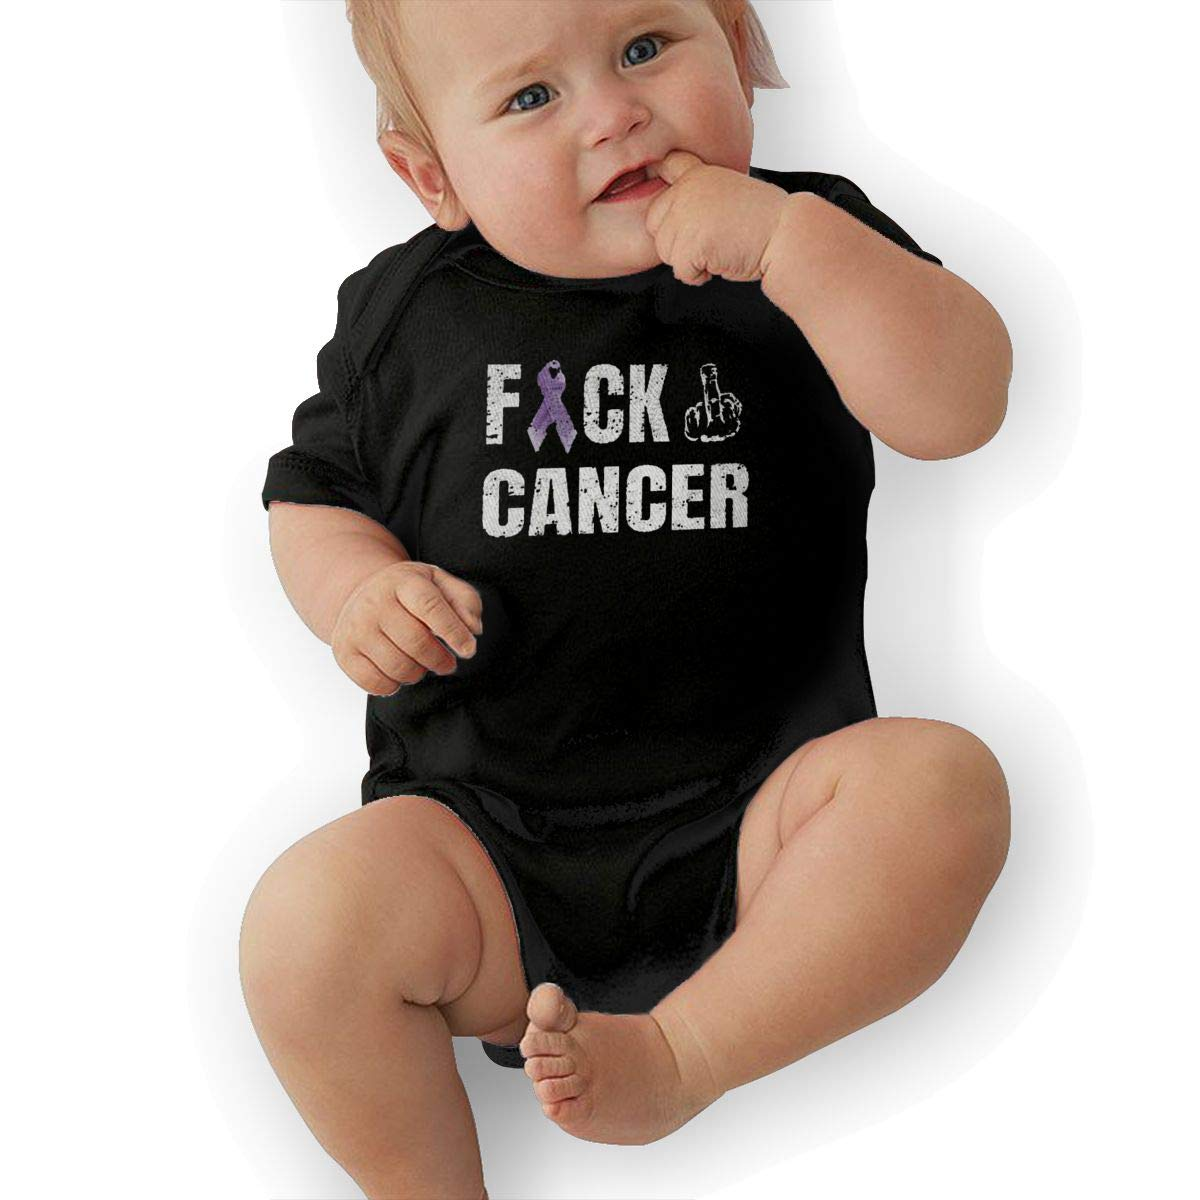 Bodysuits Clothes Onesies Jumpsuits Outfits Black HappyLifea FCK Cancer Baby Pajamas